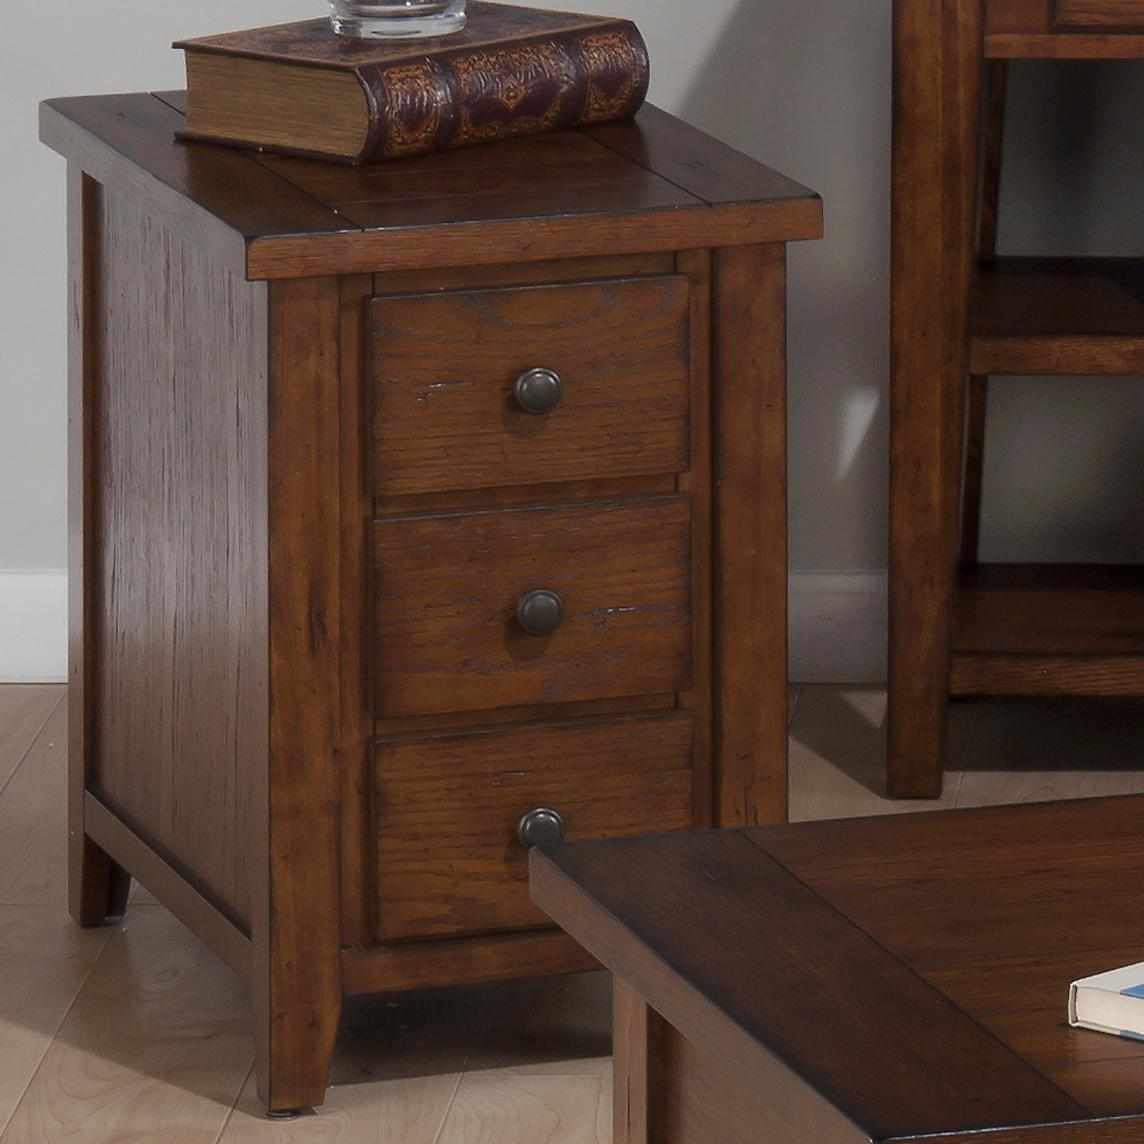 Jofran Clay County Oak 443 7 Chairside Table with 3